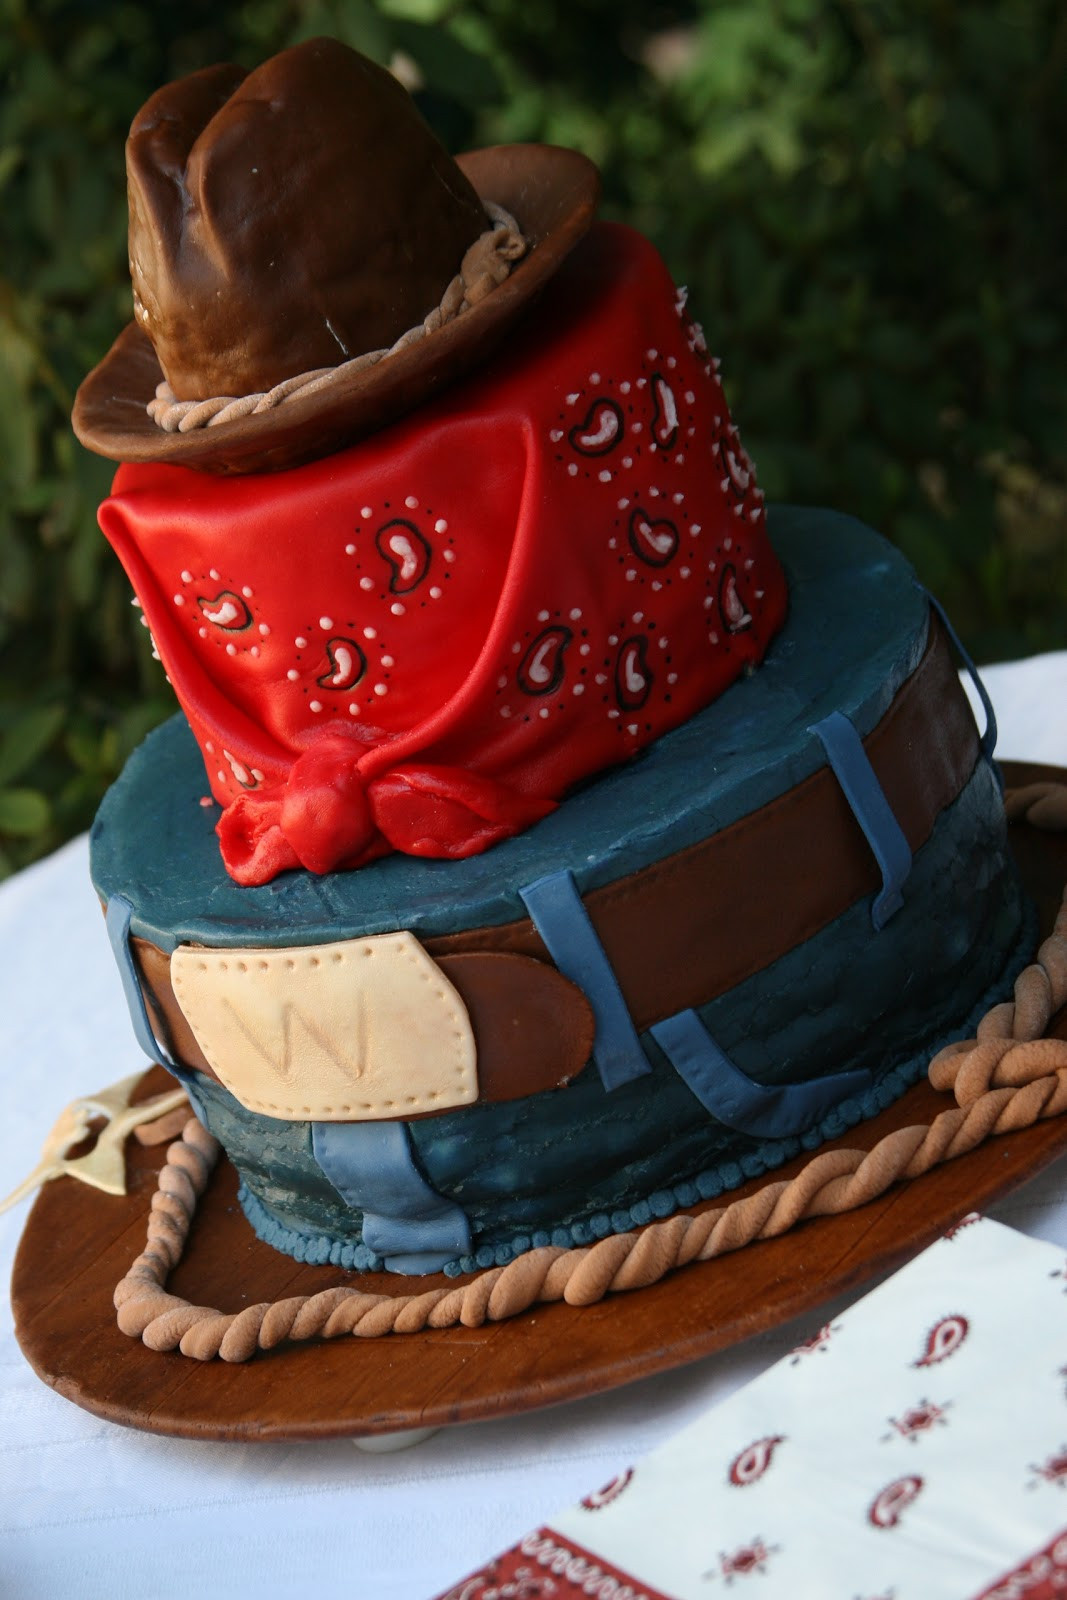 Best ideas about Western Birthday Cake . Save or Pin the cake box girls Cowboy Birthday Cake Now.